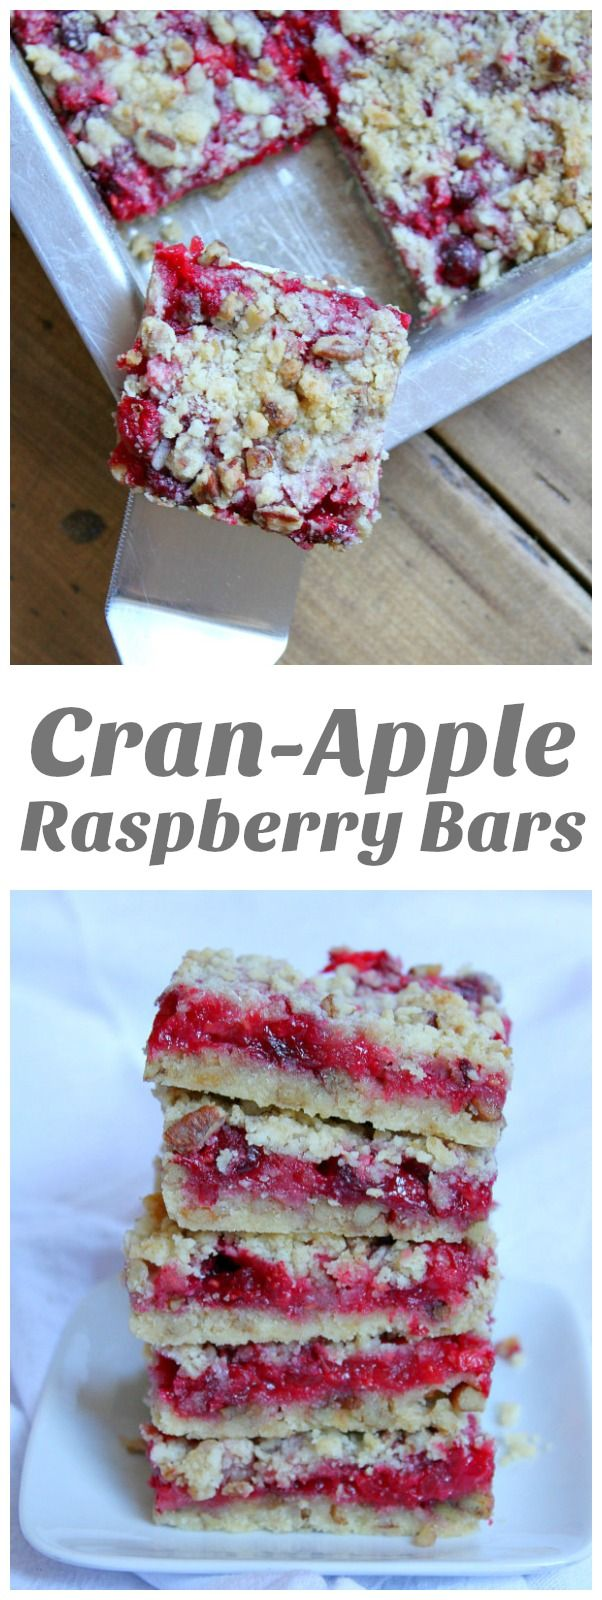 Cran-Apple Raspberry Bars recipe - from RecipeGirl.com.  These beautiful bars are filled with fresh cranberry, apple and raspberry with a buttery crumb crust and topping.